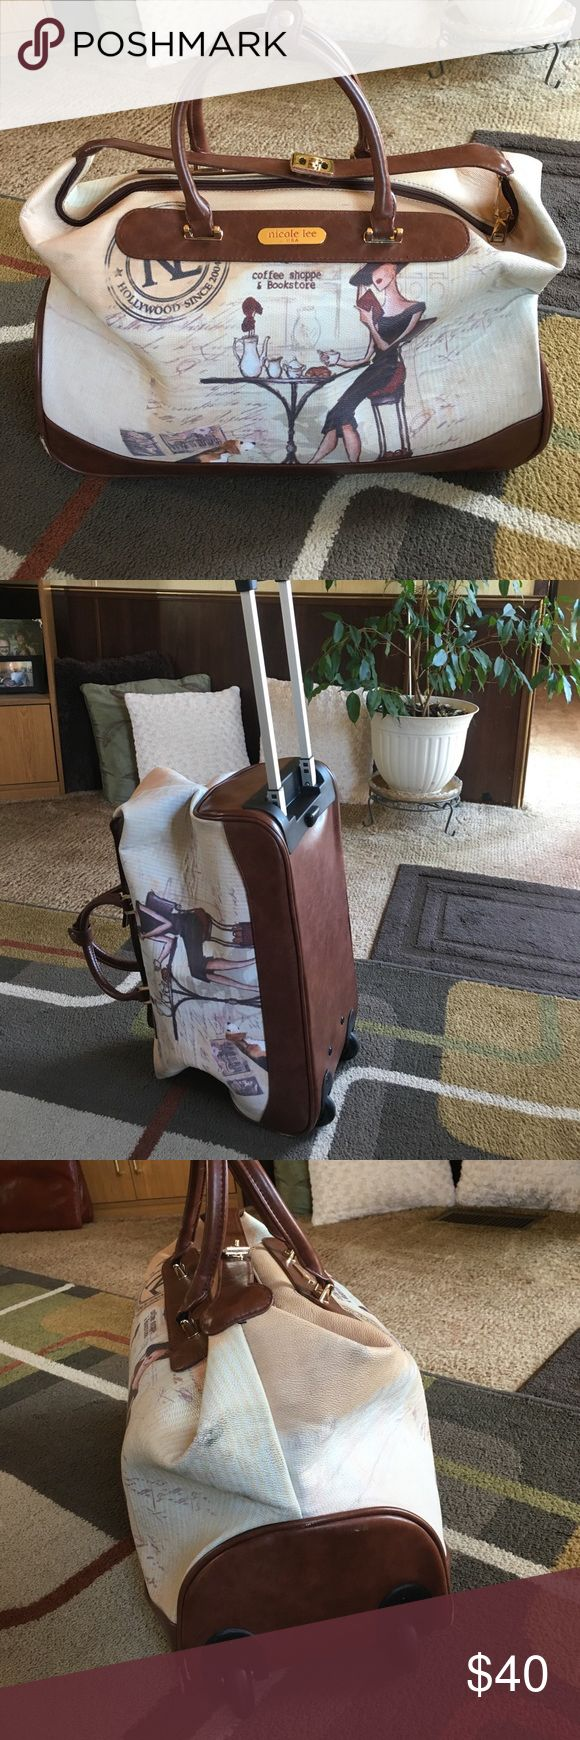 """Nicole Lee travel bag Bag measures approx H 13"""" x W 21.5"""" x D 9""""  bag has extendable handle and wheels on one side bag is used and does have some wear inside one large zip pocket and one velcro closed laptop spot Nicole Lee Bags Travel Bags"""